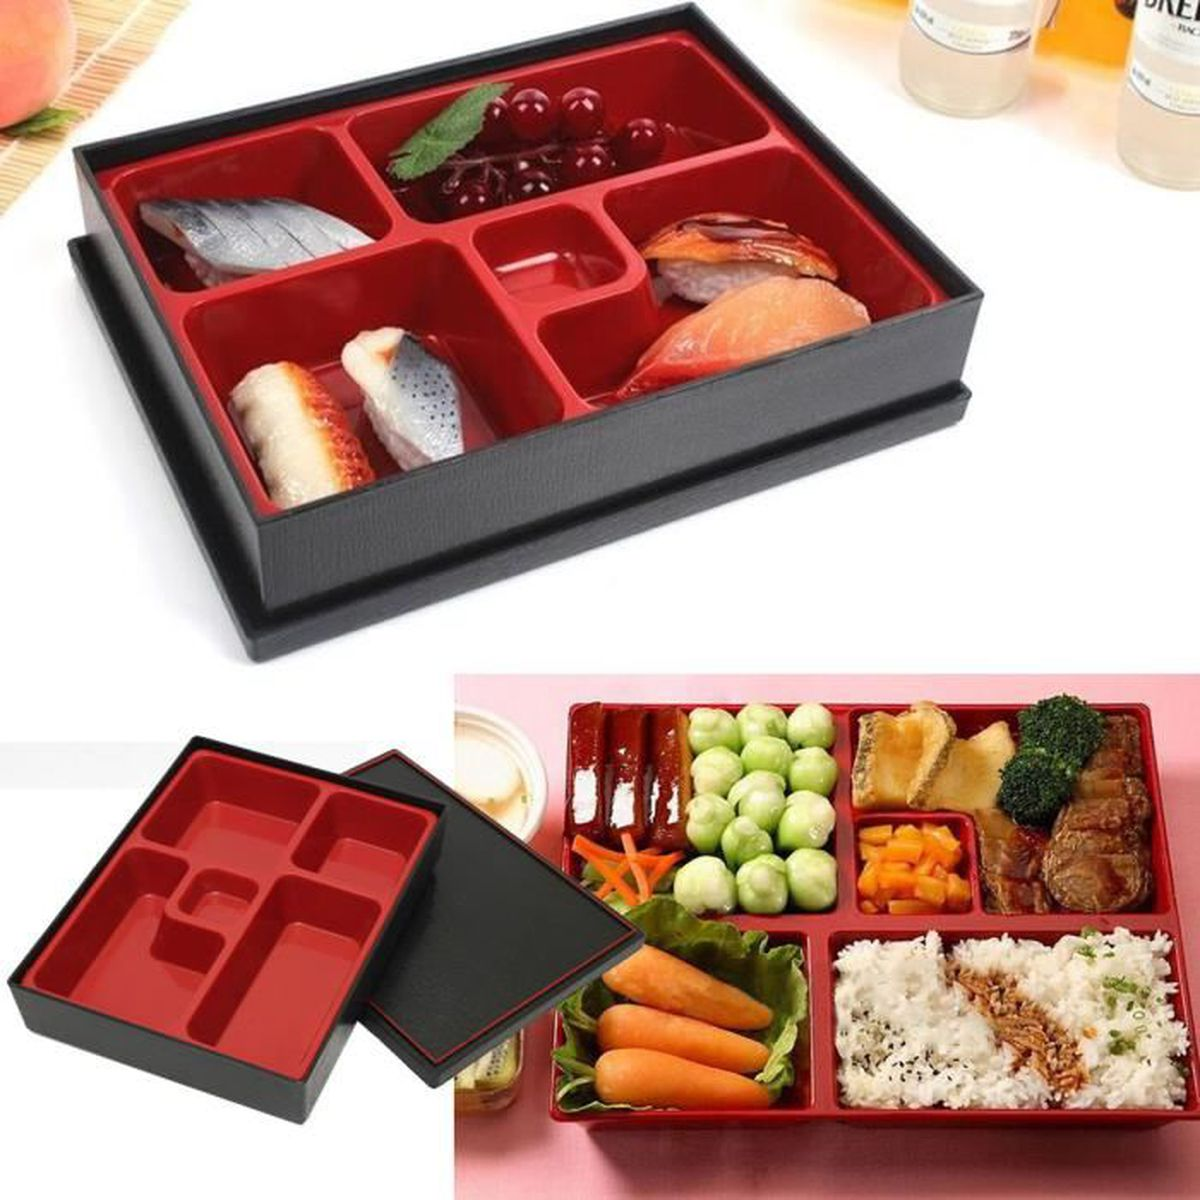 bo te repas dejeuner lunch bento box japonaise sushi. Black Bedroom Furniture Sets. Home Design Ideas